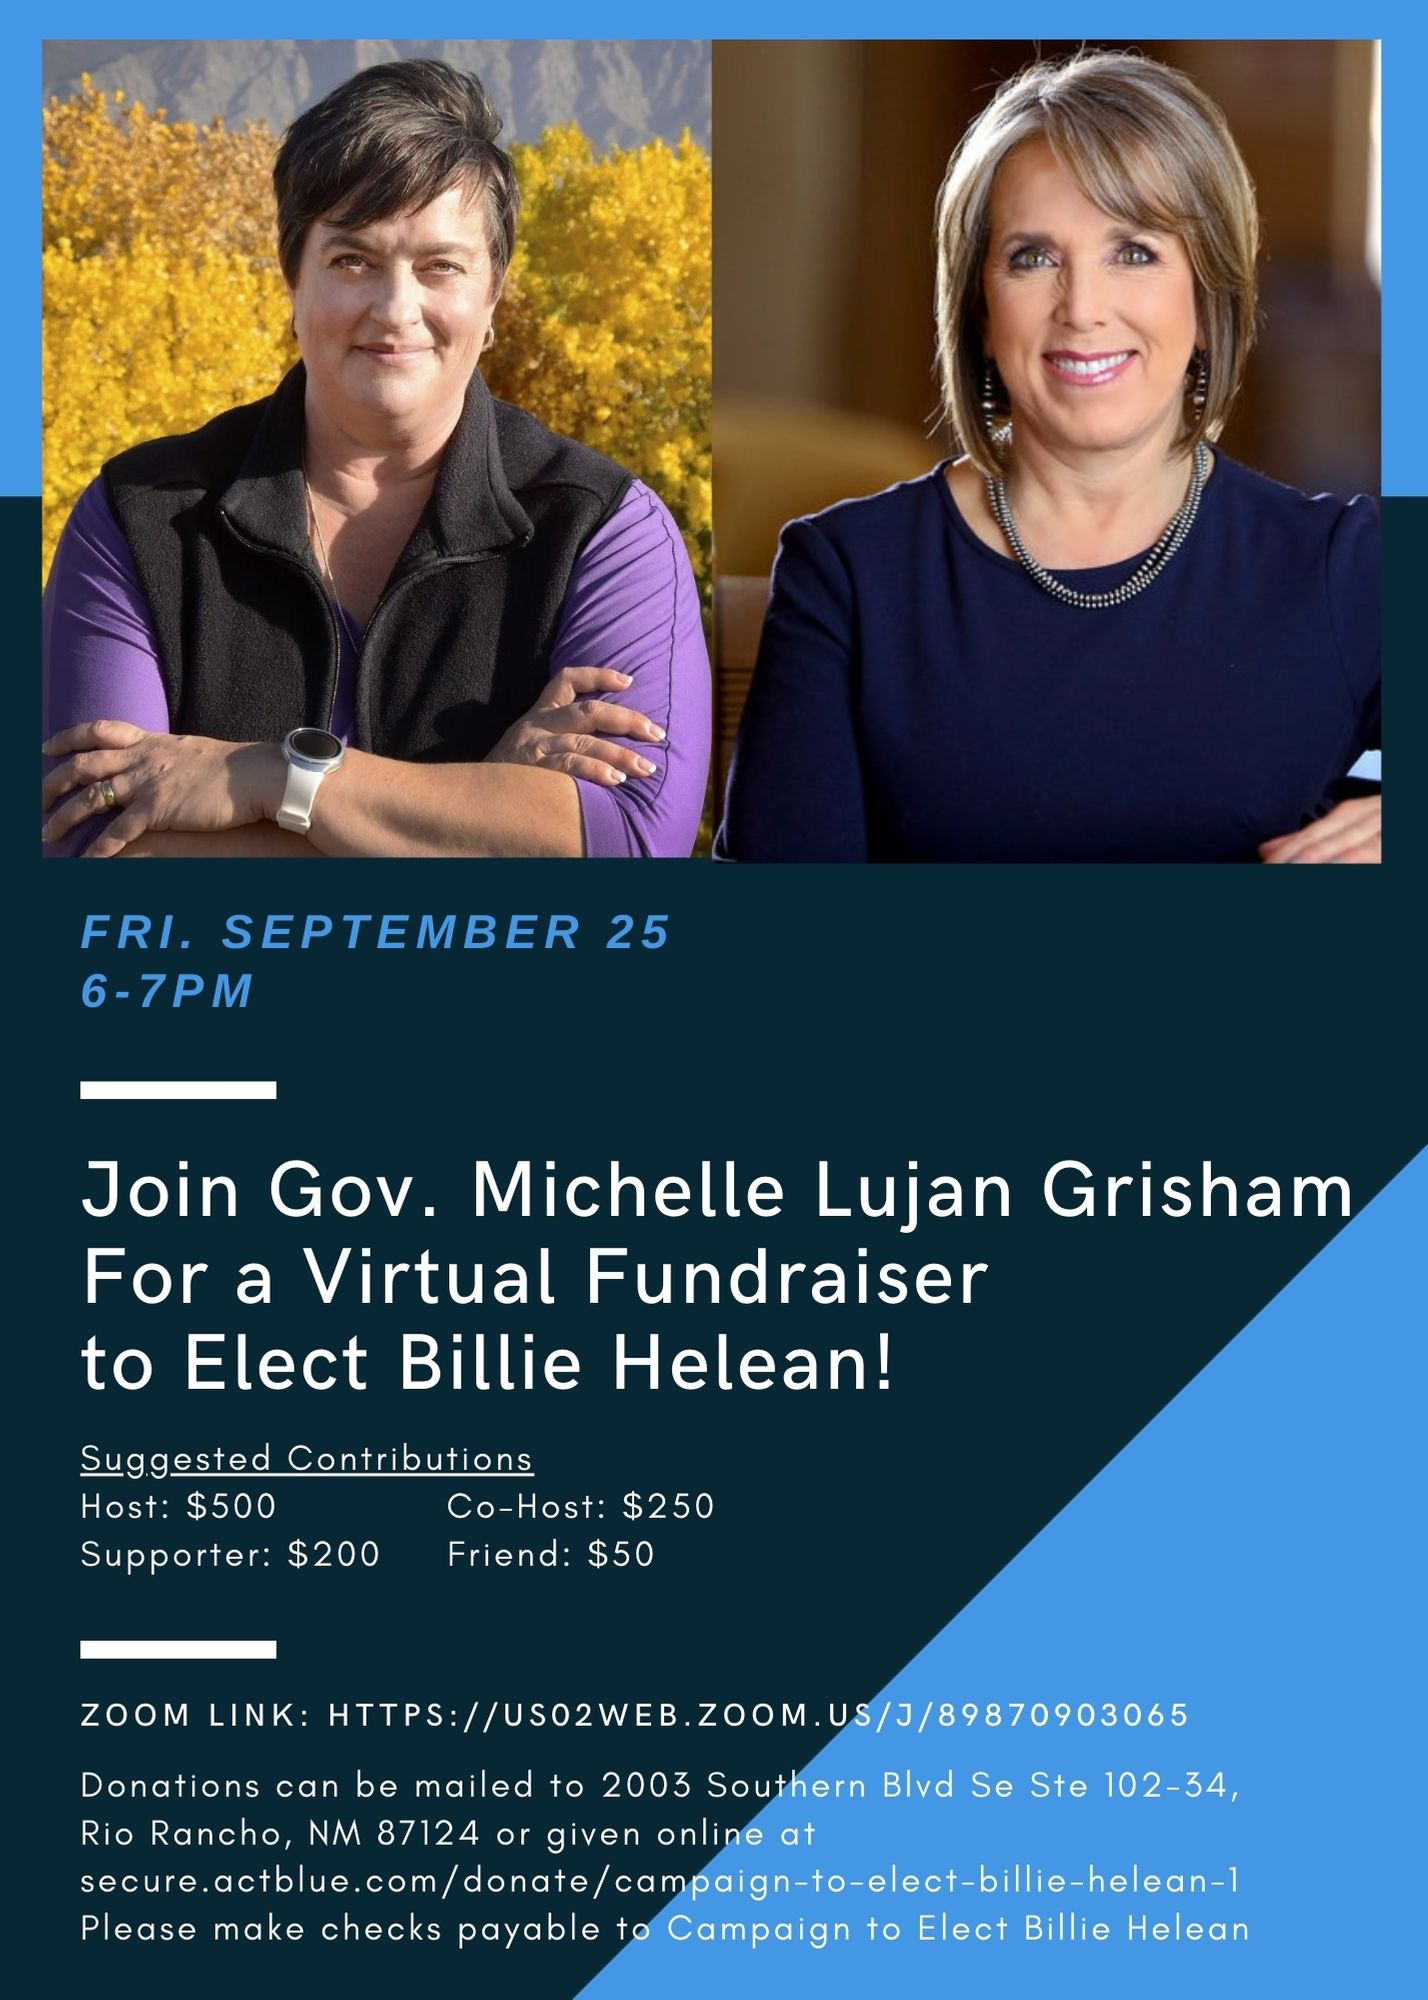 Join Gov. Lujan Grisham For a Virtual Fundraiser to Elect Billie Helean